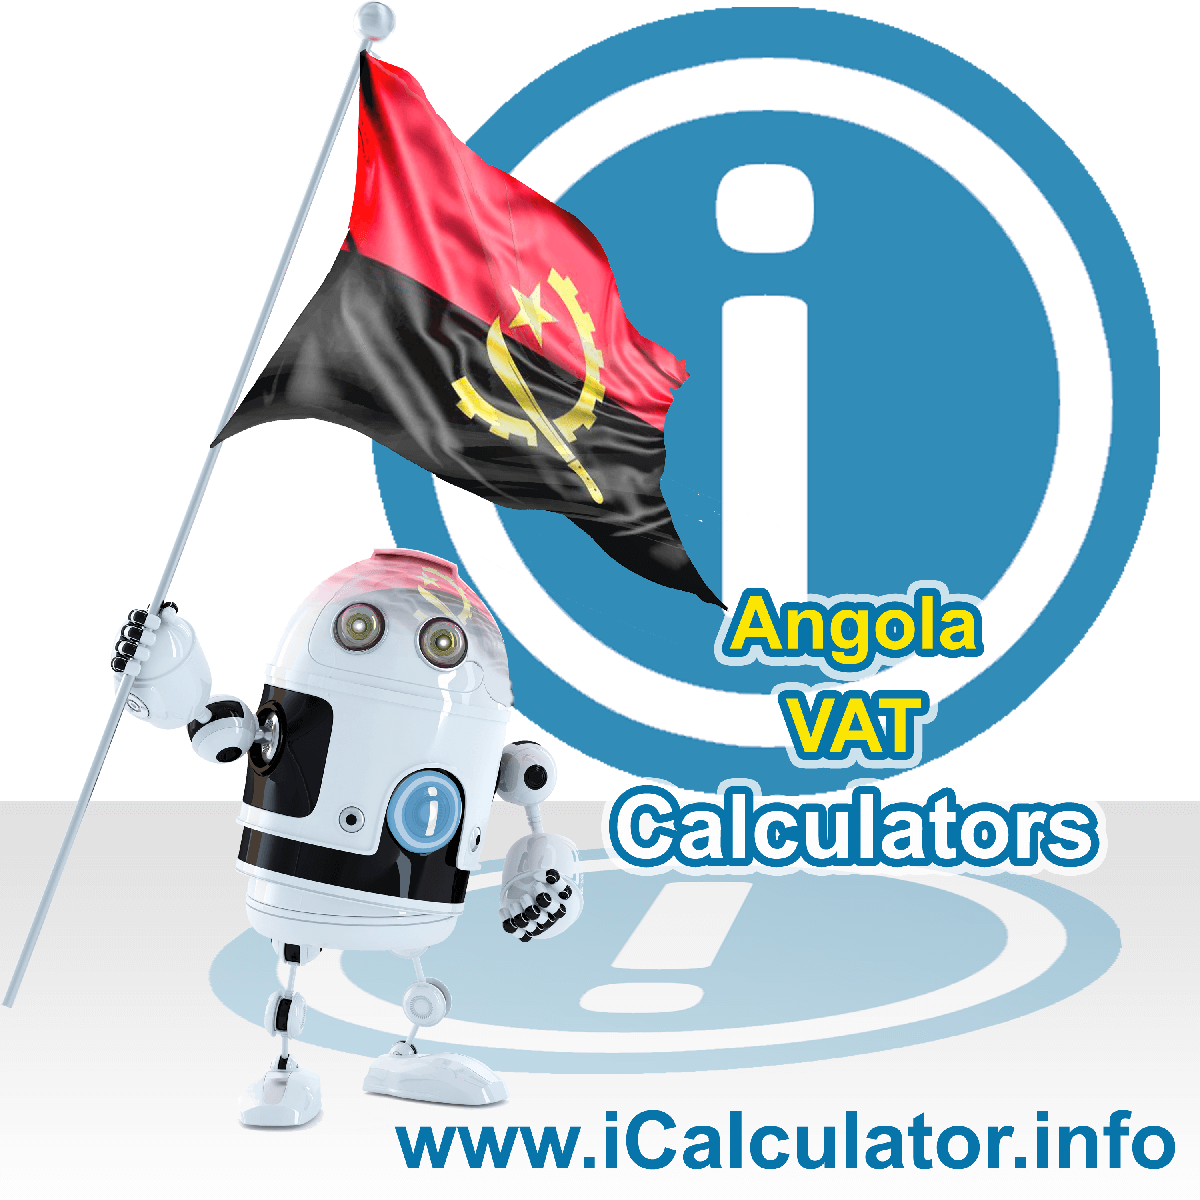 Angola VAT Calculator. This image shows the Angola flag and information relating to the VAT formula used for calculating Value Added Tax in Angola using the Angola VAT Calculator in 2020